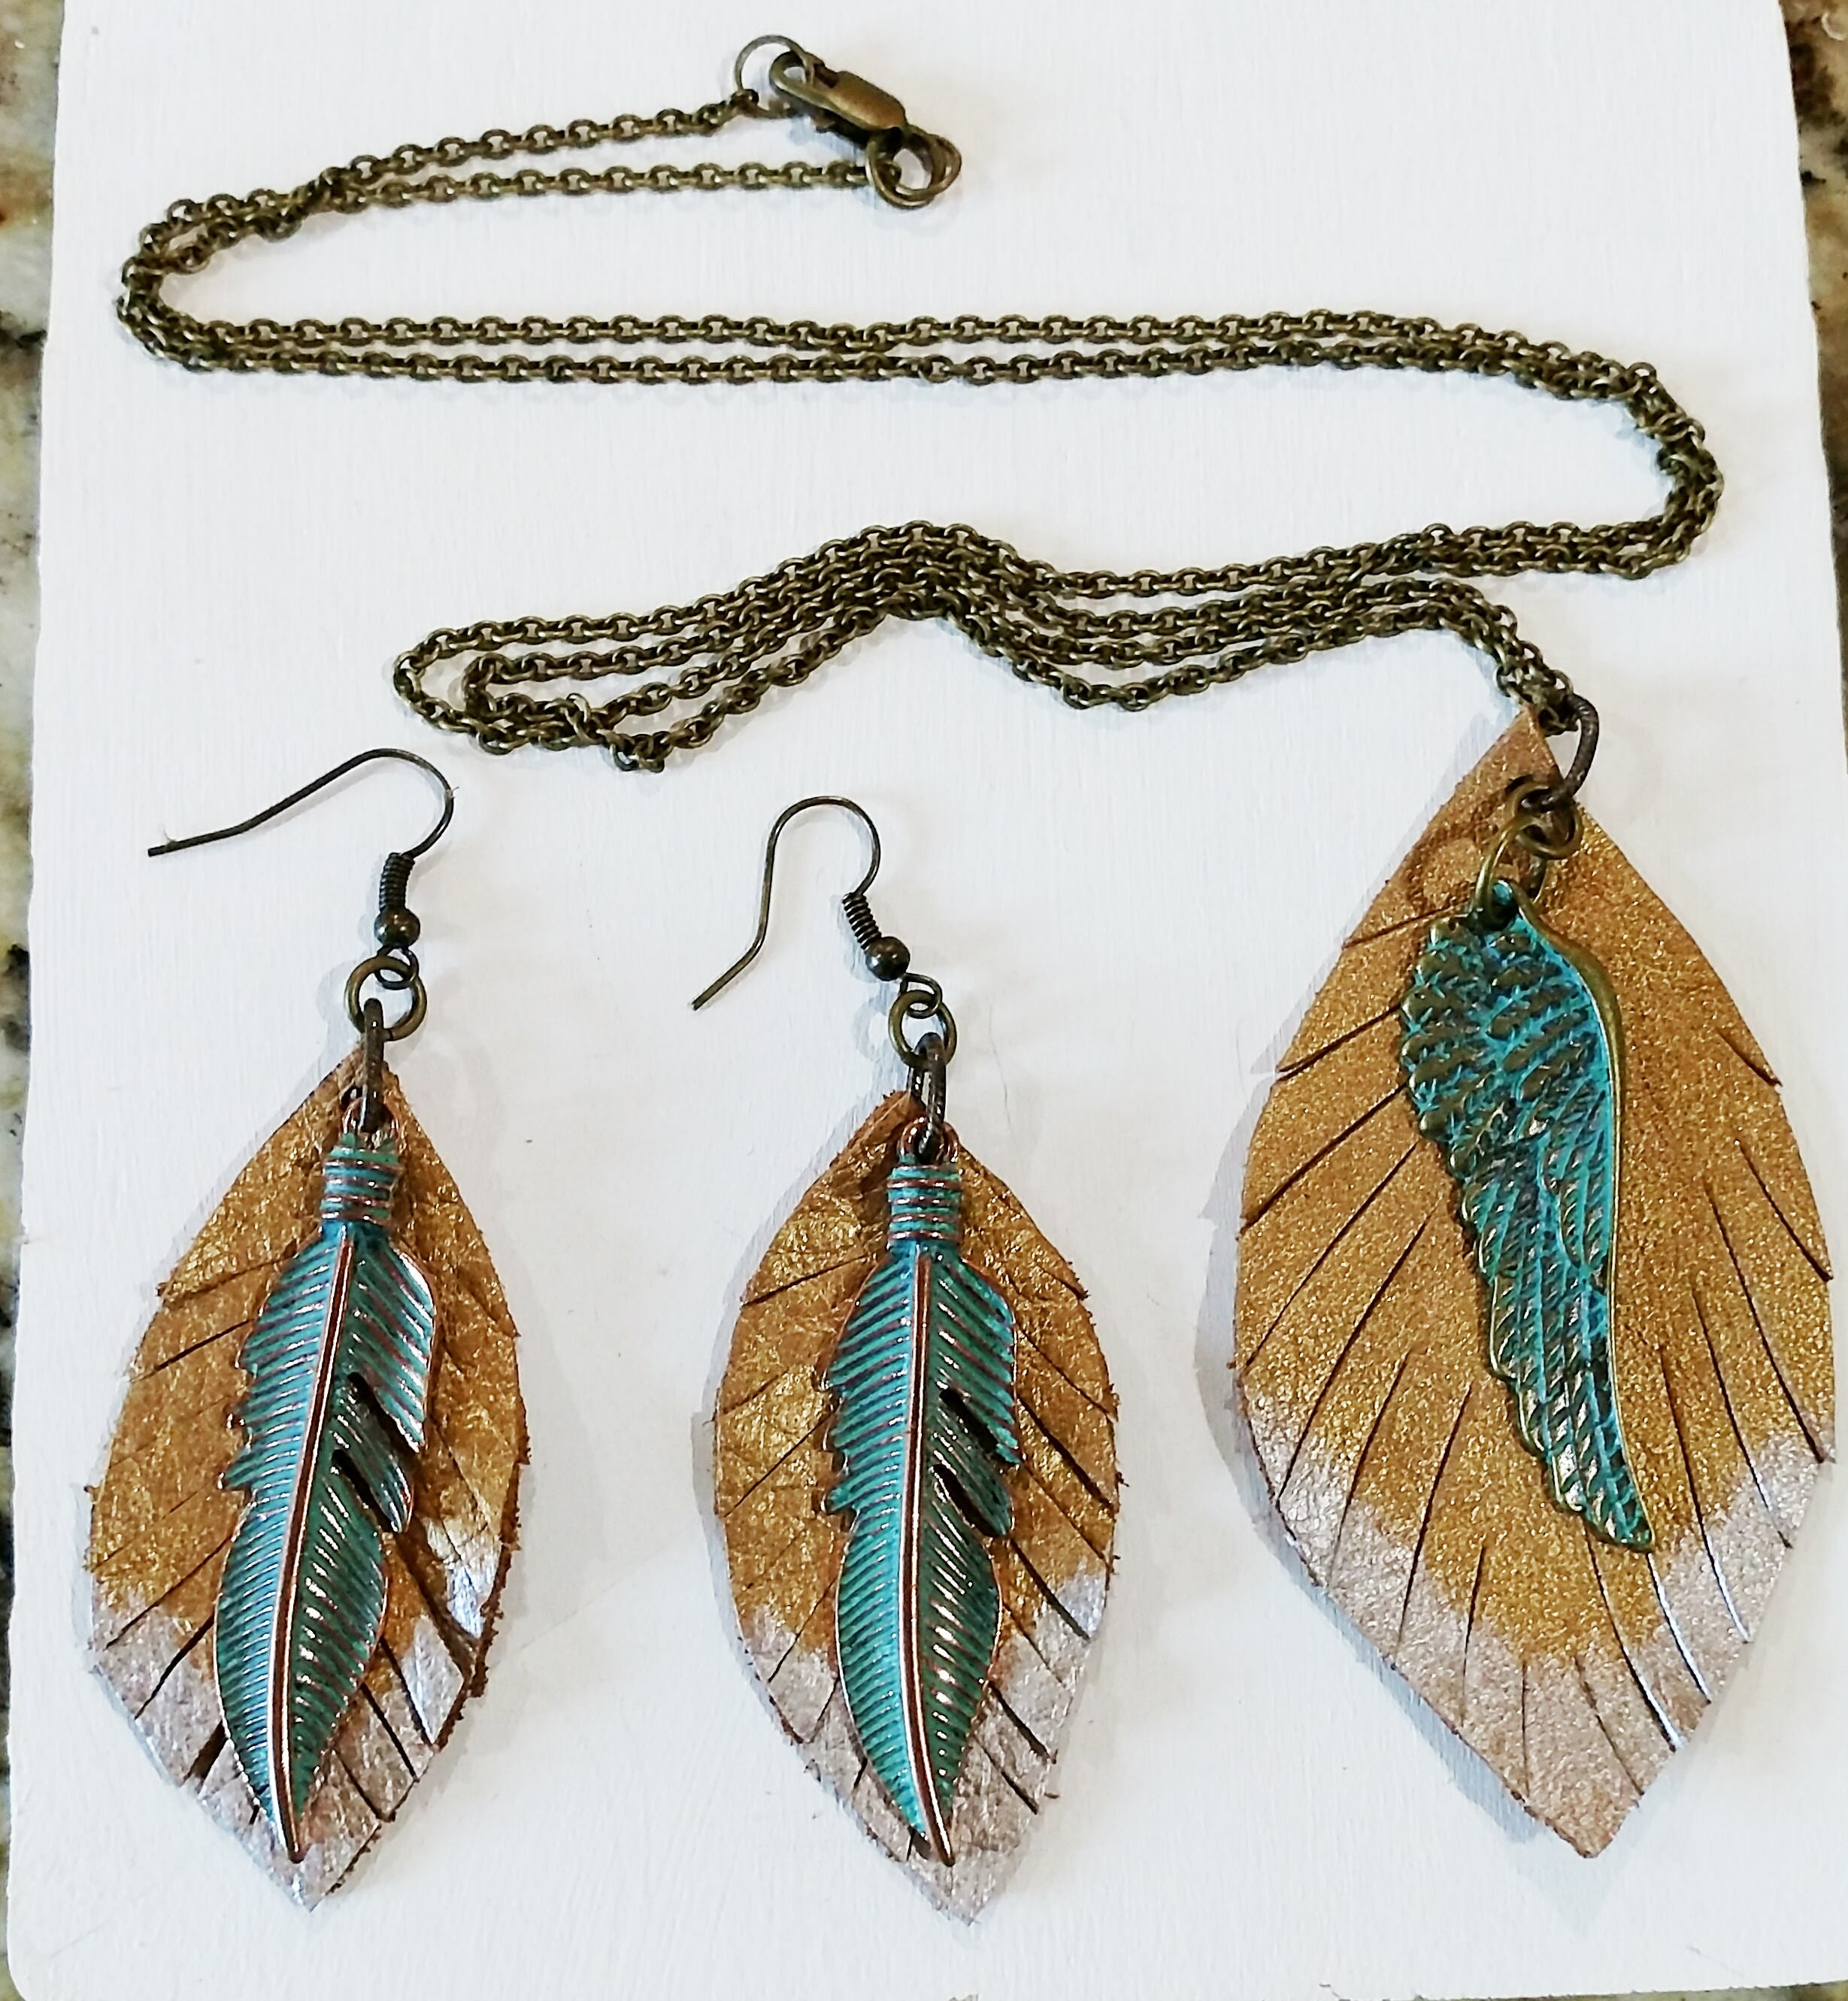 Gold Leather Feather Earrings And Necklace With Turquoise Feather Charms In Recent Golden Tan Leather Feather Choker Necklaces (View 12 of 25)